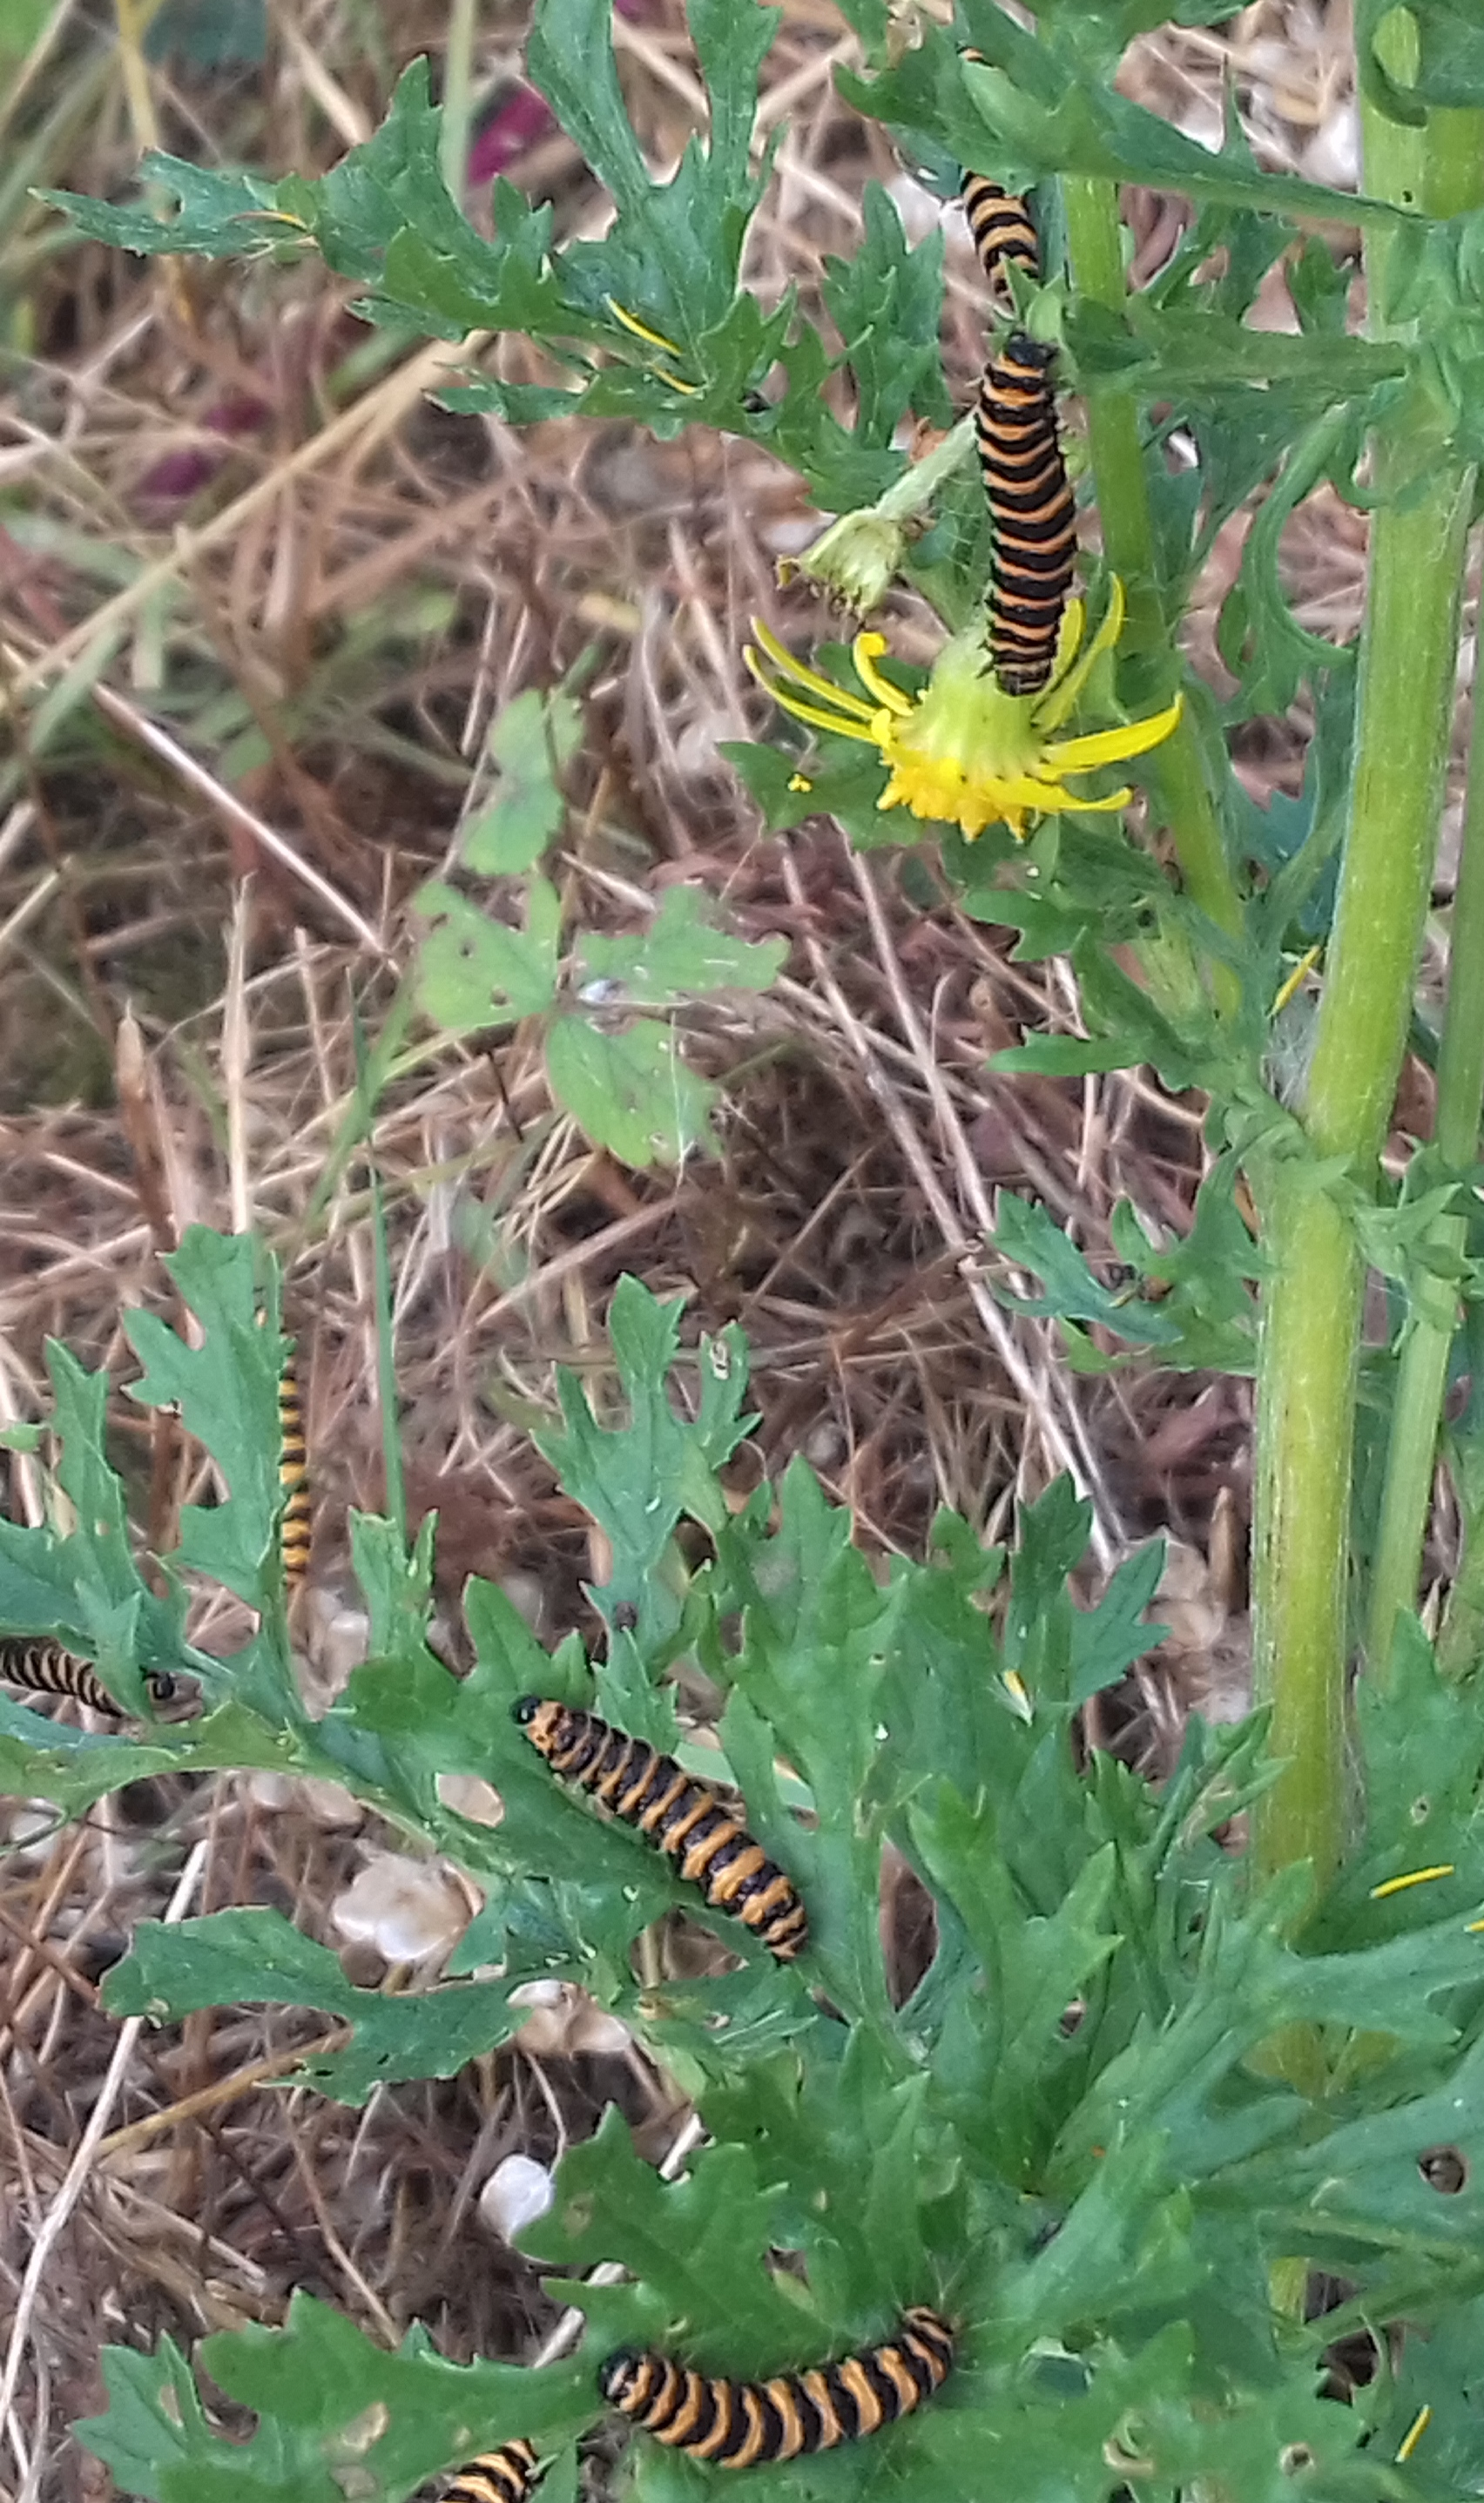 Image is a close-up of several cinnabar moth caterpillars feeding on ragwort. The caterpillars have yellow and black stripes around their bodies.